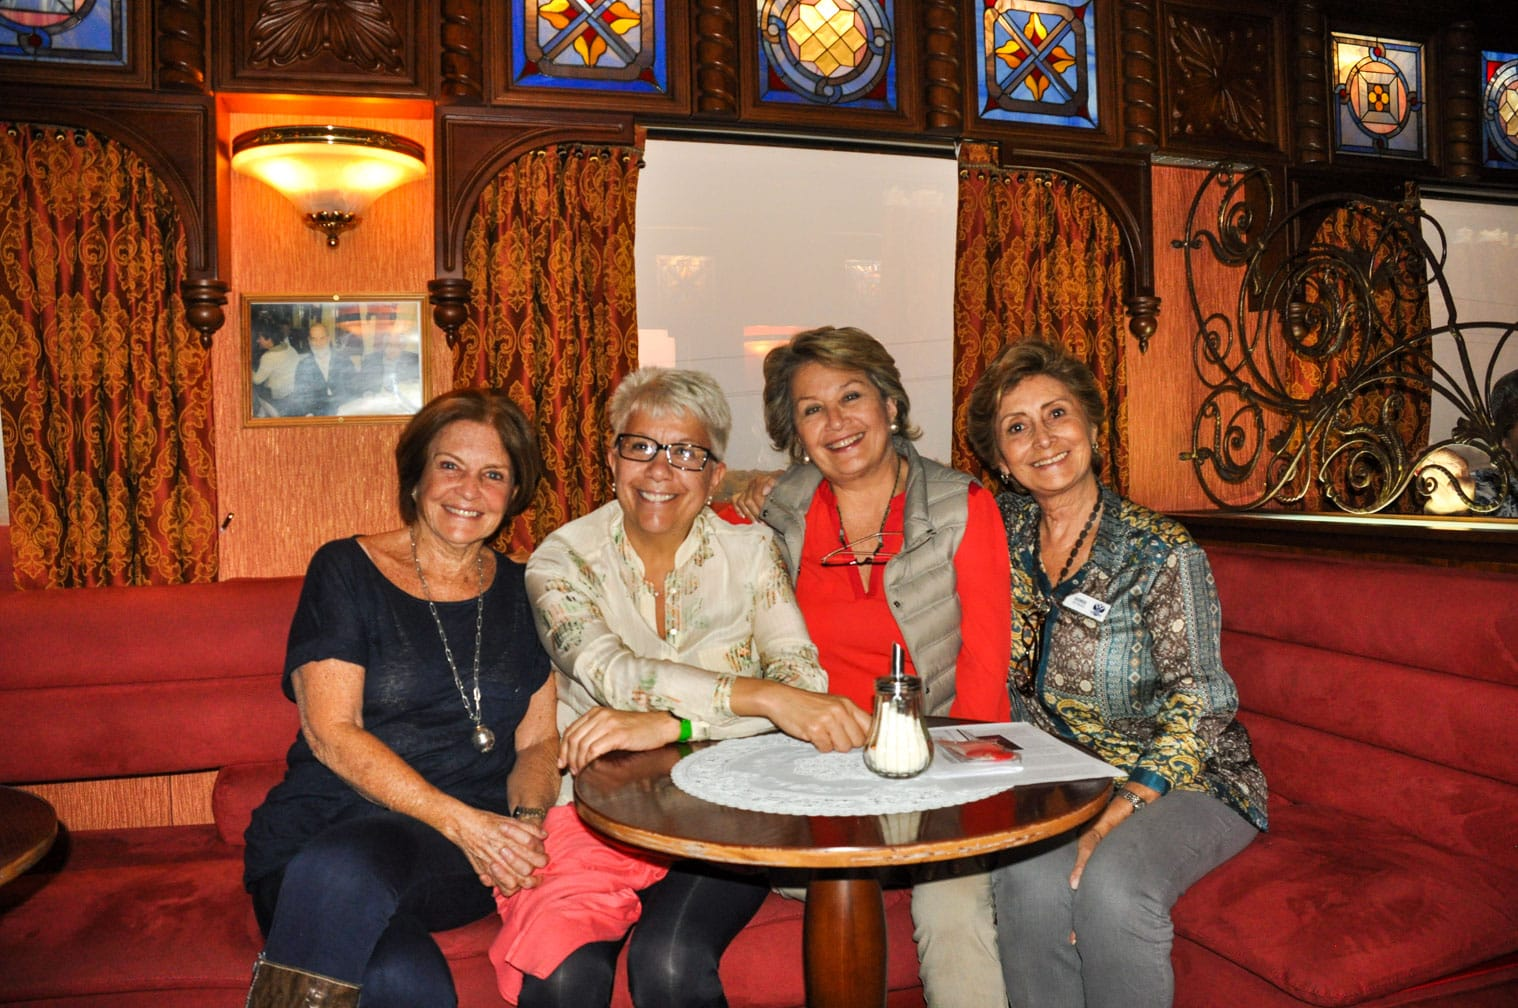 Four women sitting in the Golden Eagle train